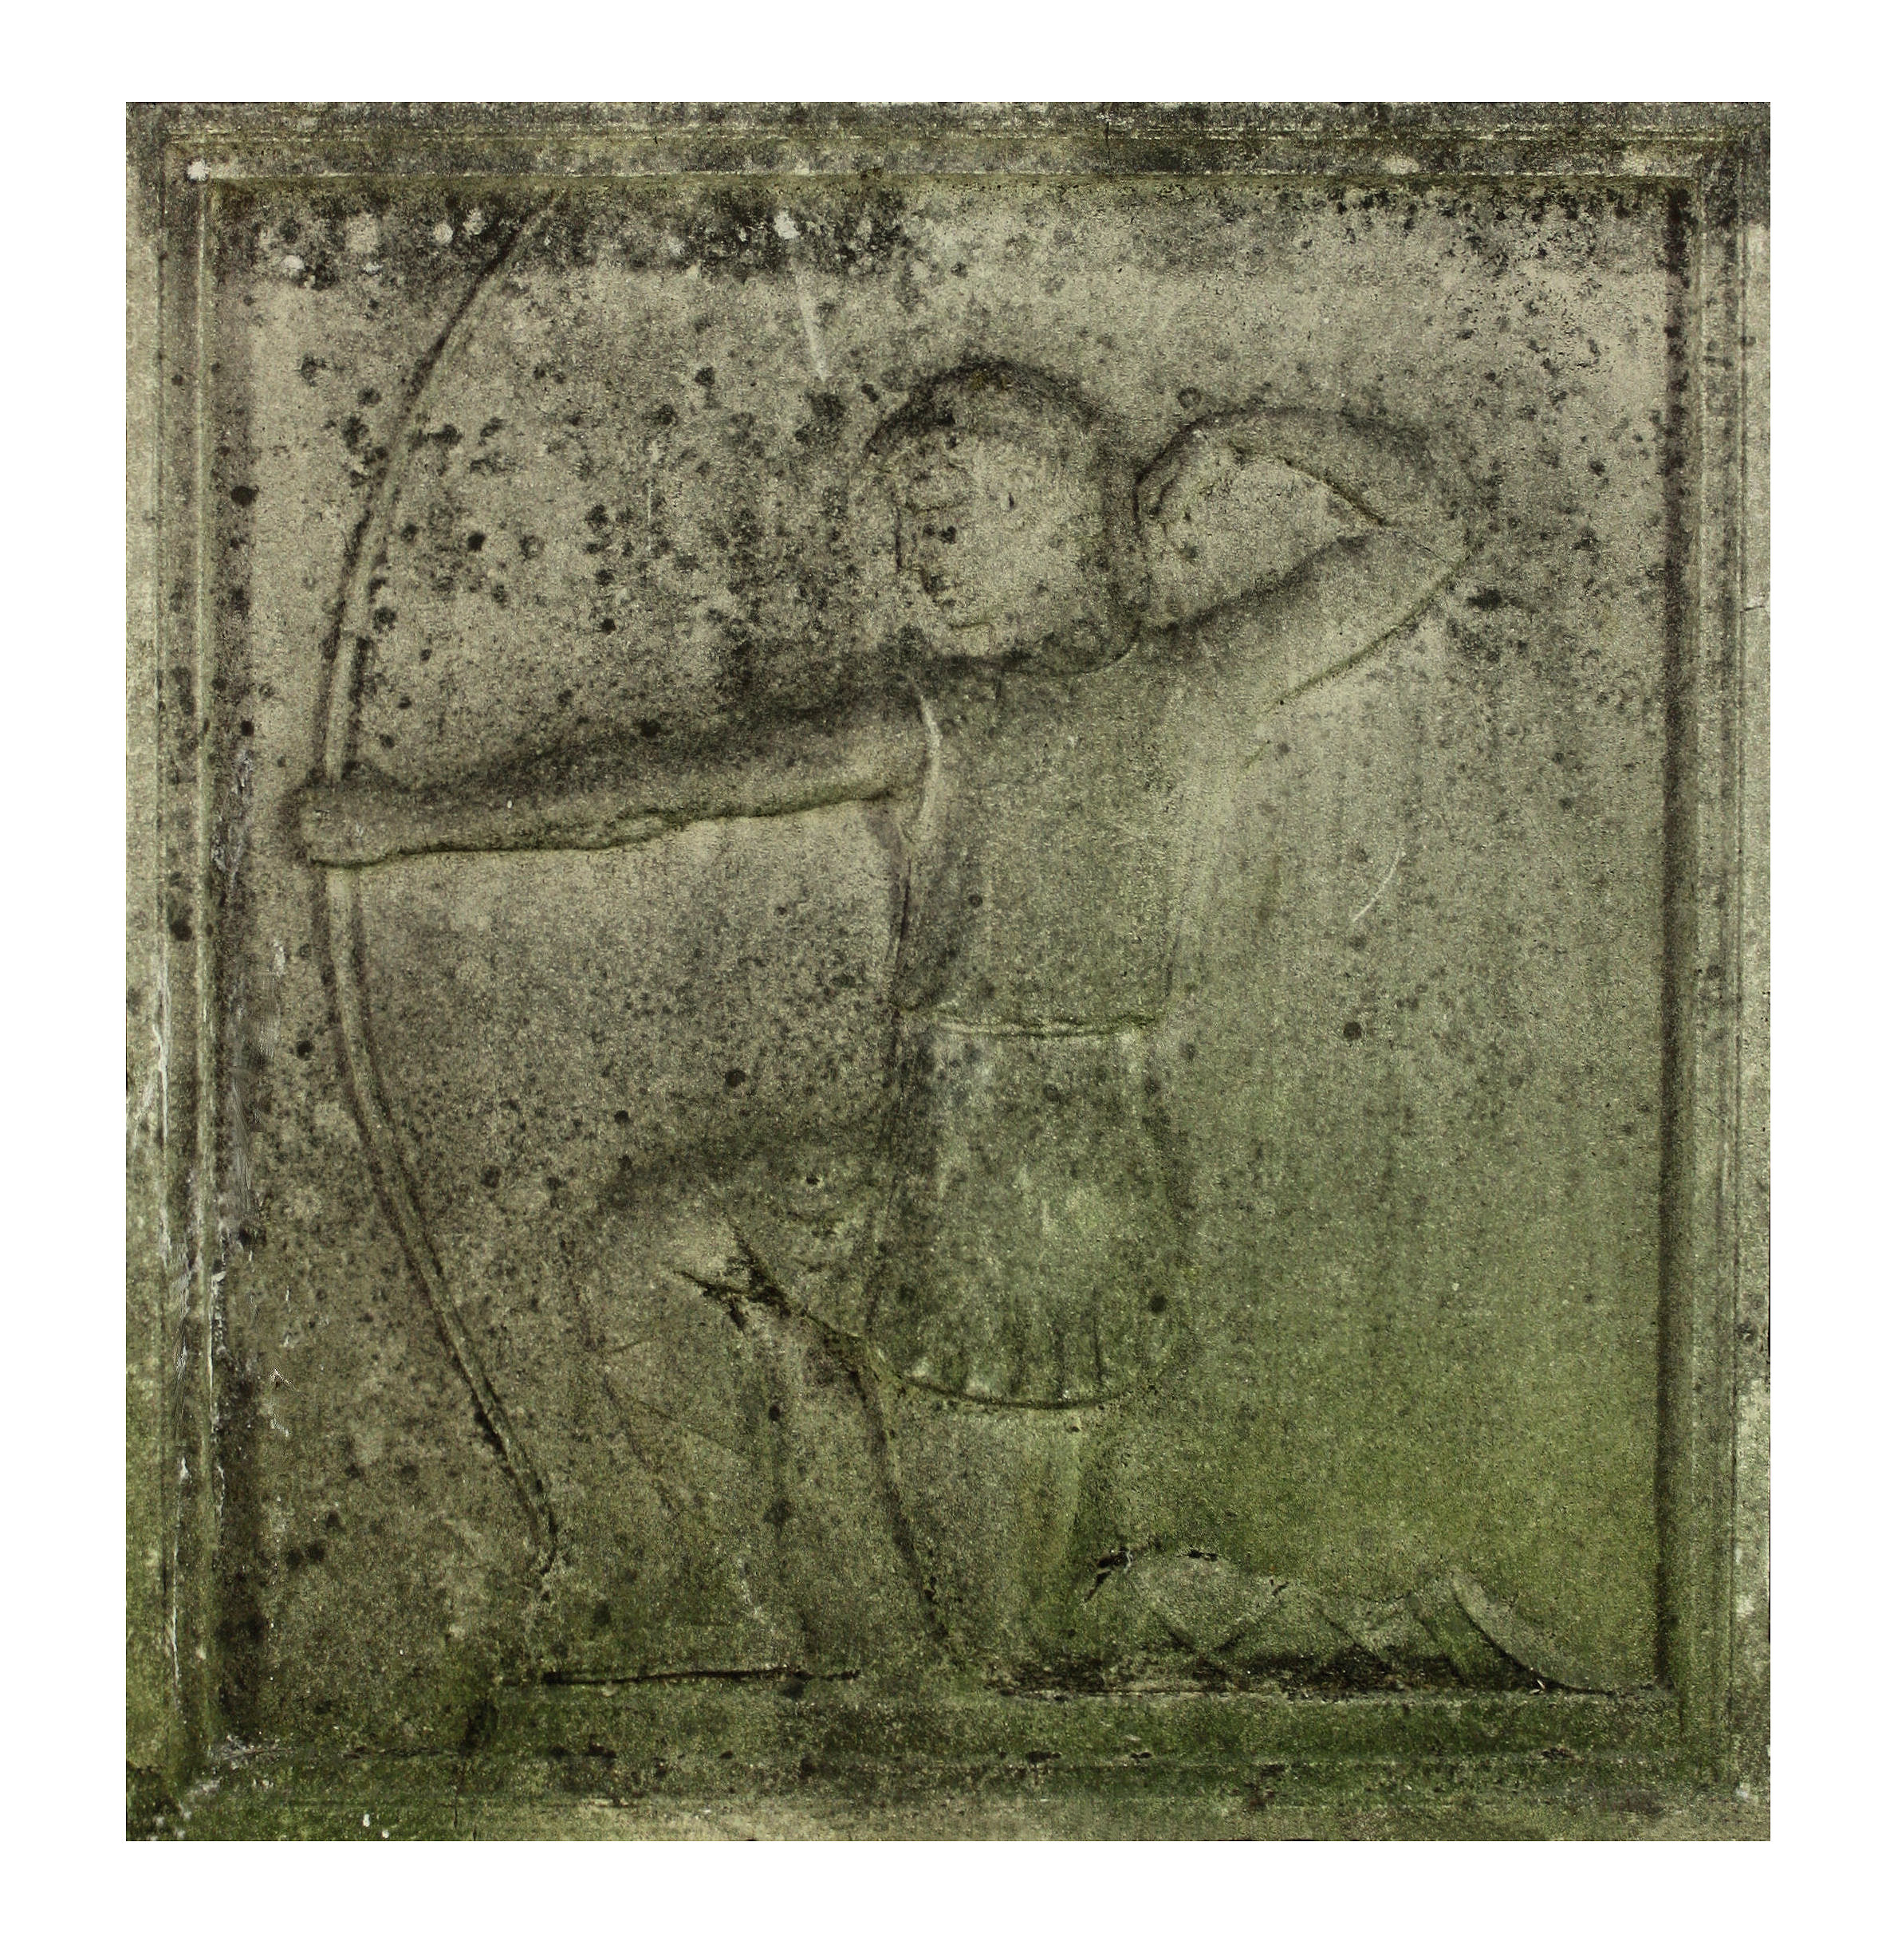 A STONE RELIEF OF AN ARCHER